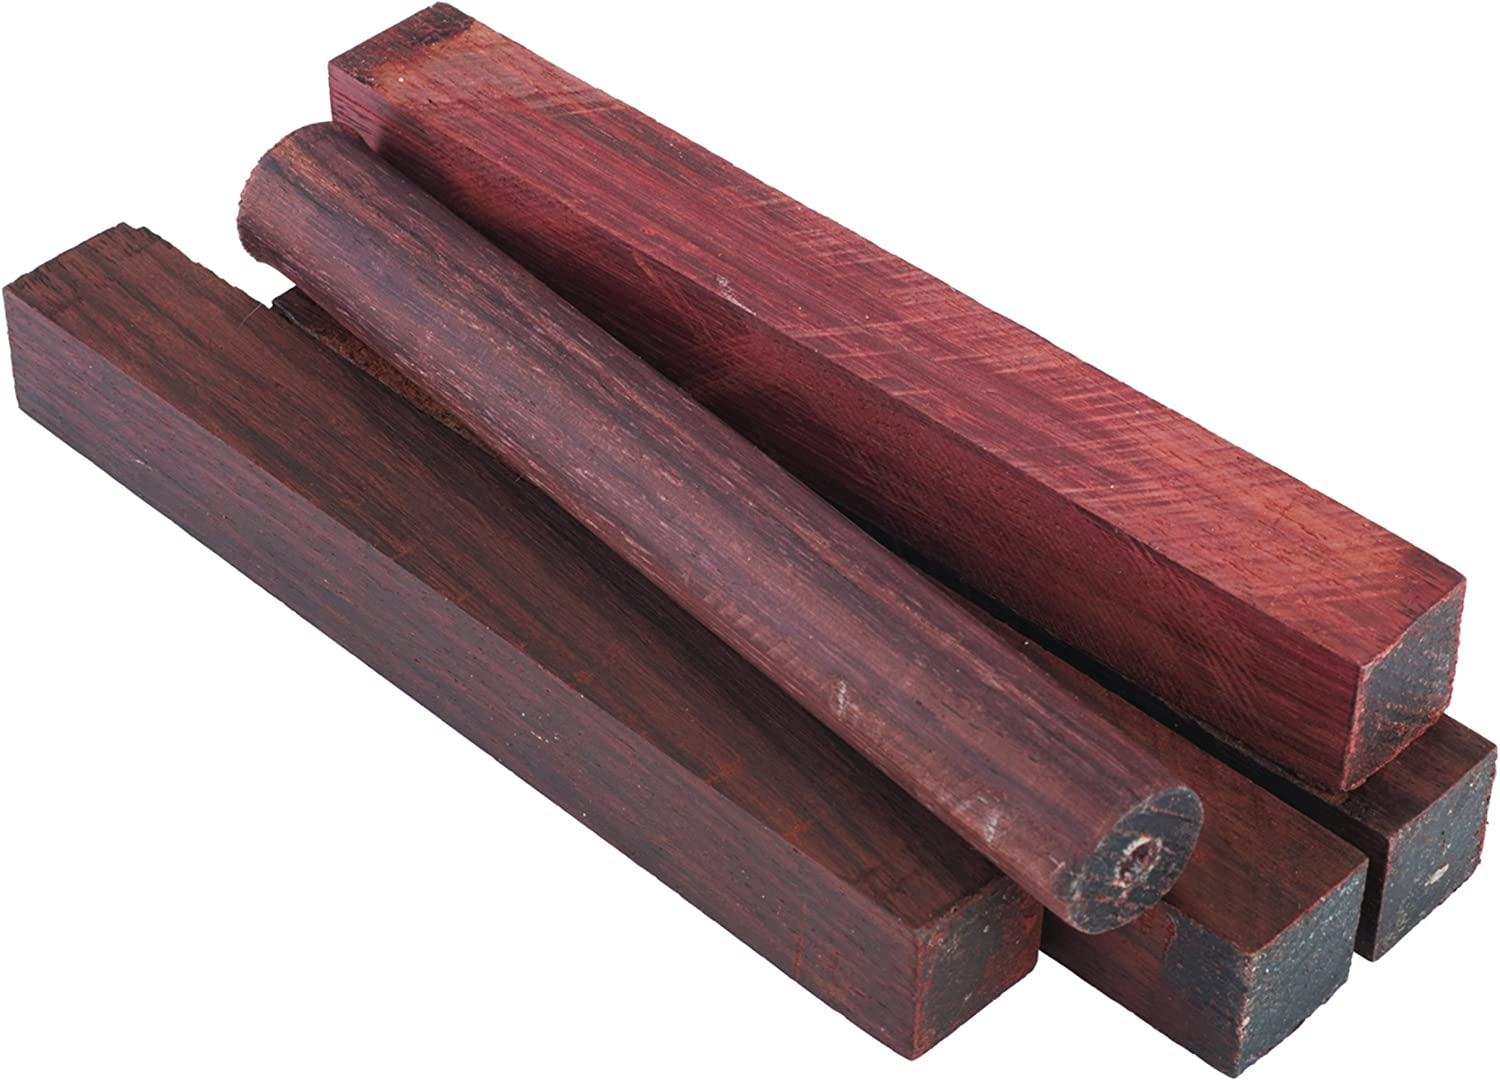 Walnut Pen Blanks 3//4 x 3//4 x 5 Set of 5